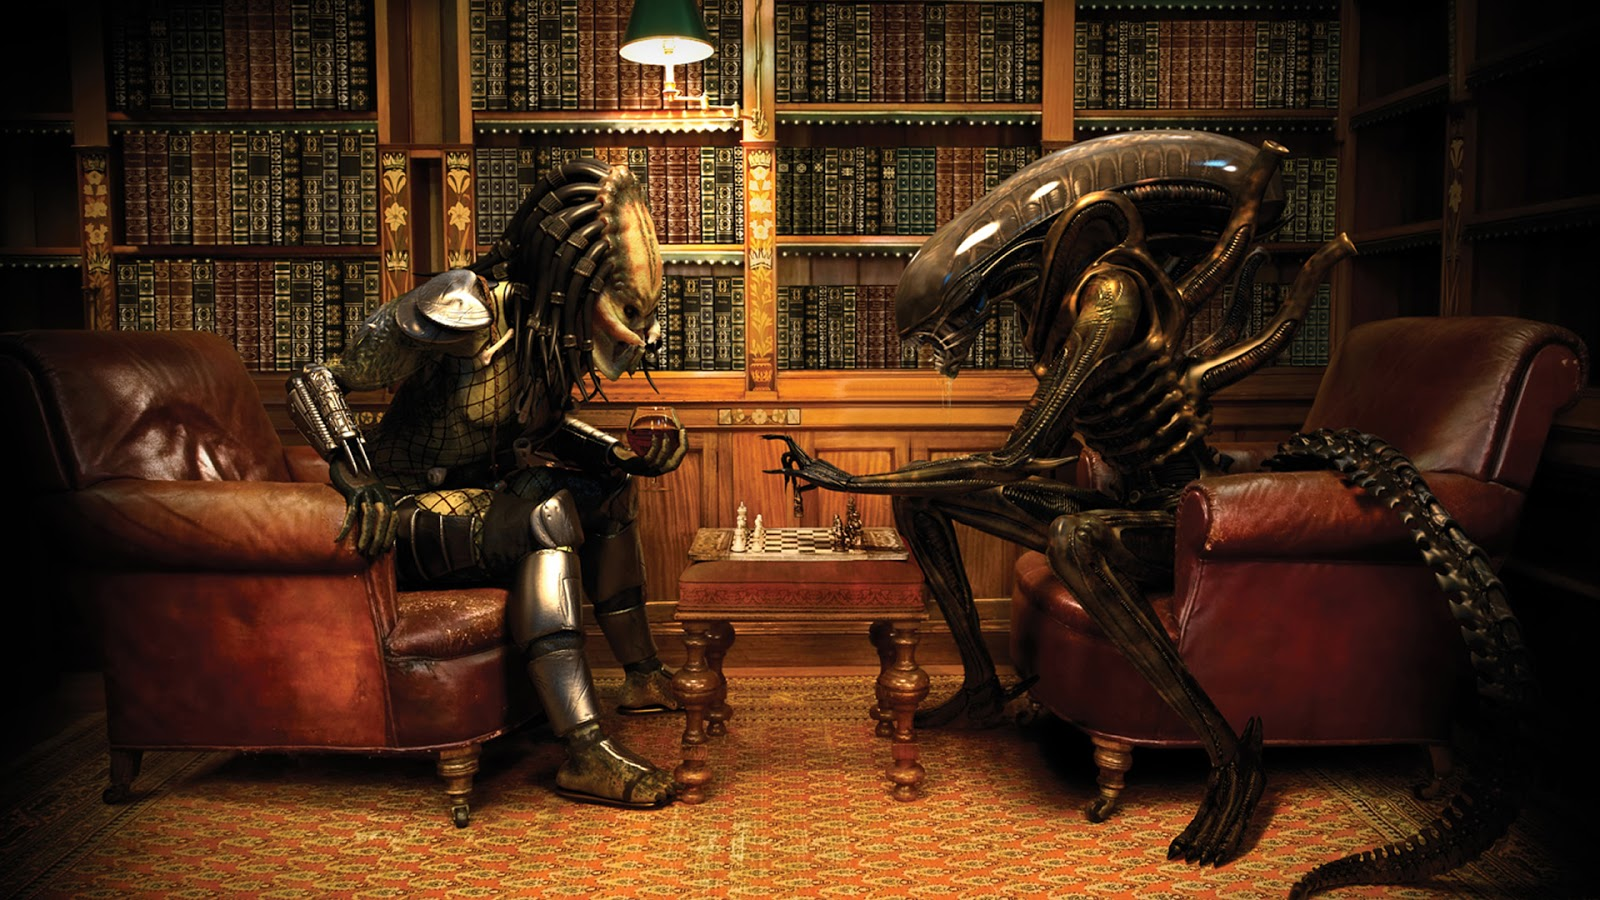 Alien Vs predator Chess Play Funny Wallpapers